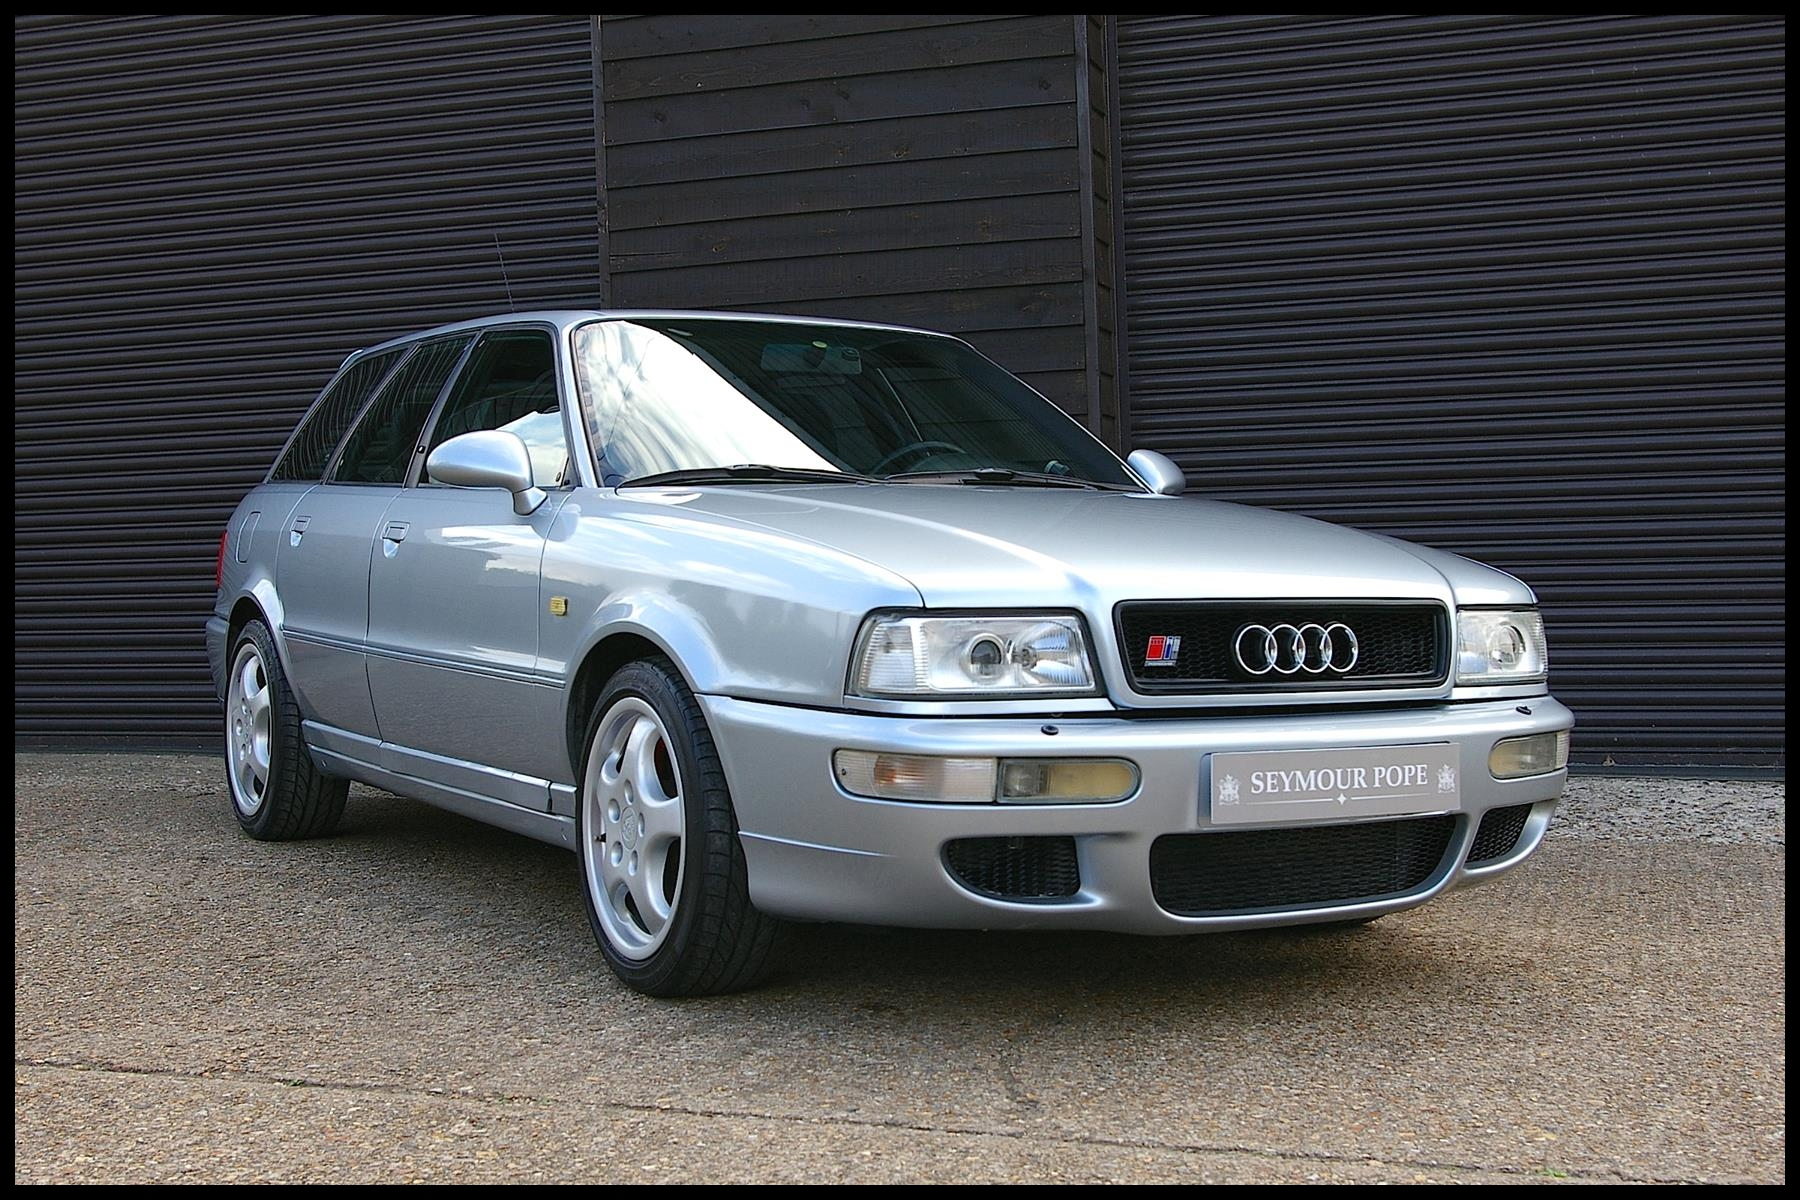 AUDI RS2 20V TURBO QUATTRO AVANT 6 SPEED MANUAL LHD STUNNING RARE EXAMPLE 1994